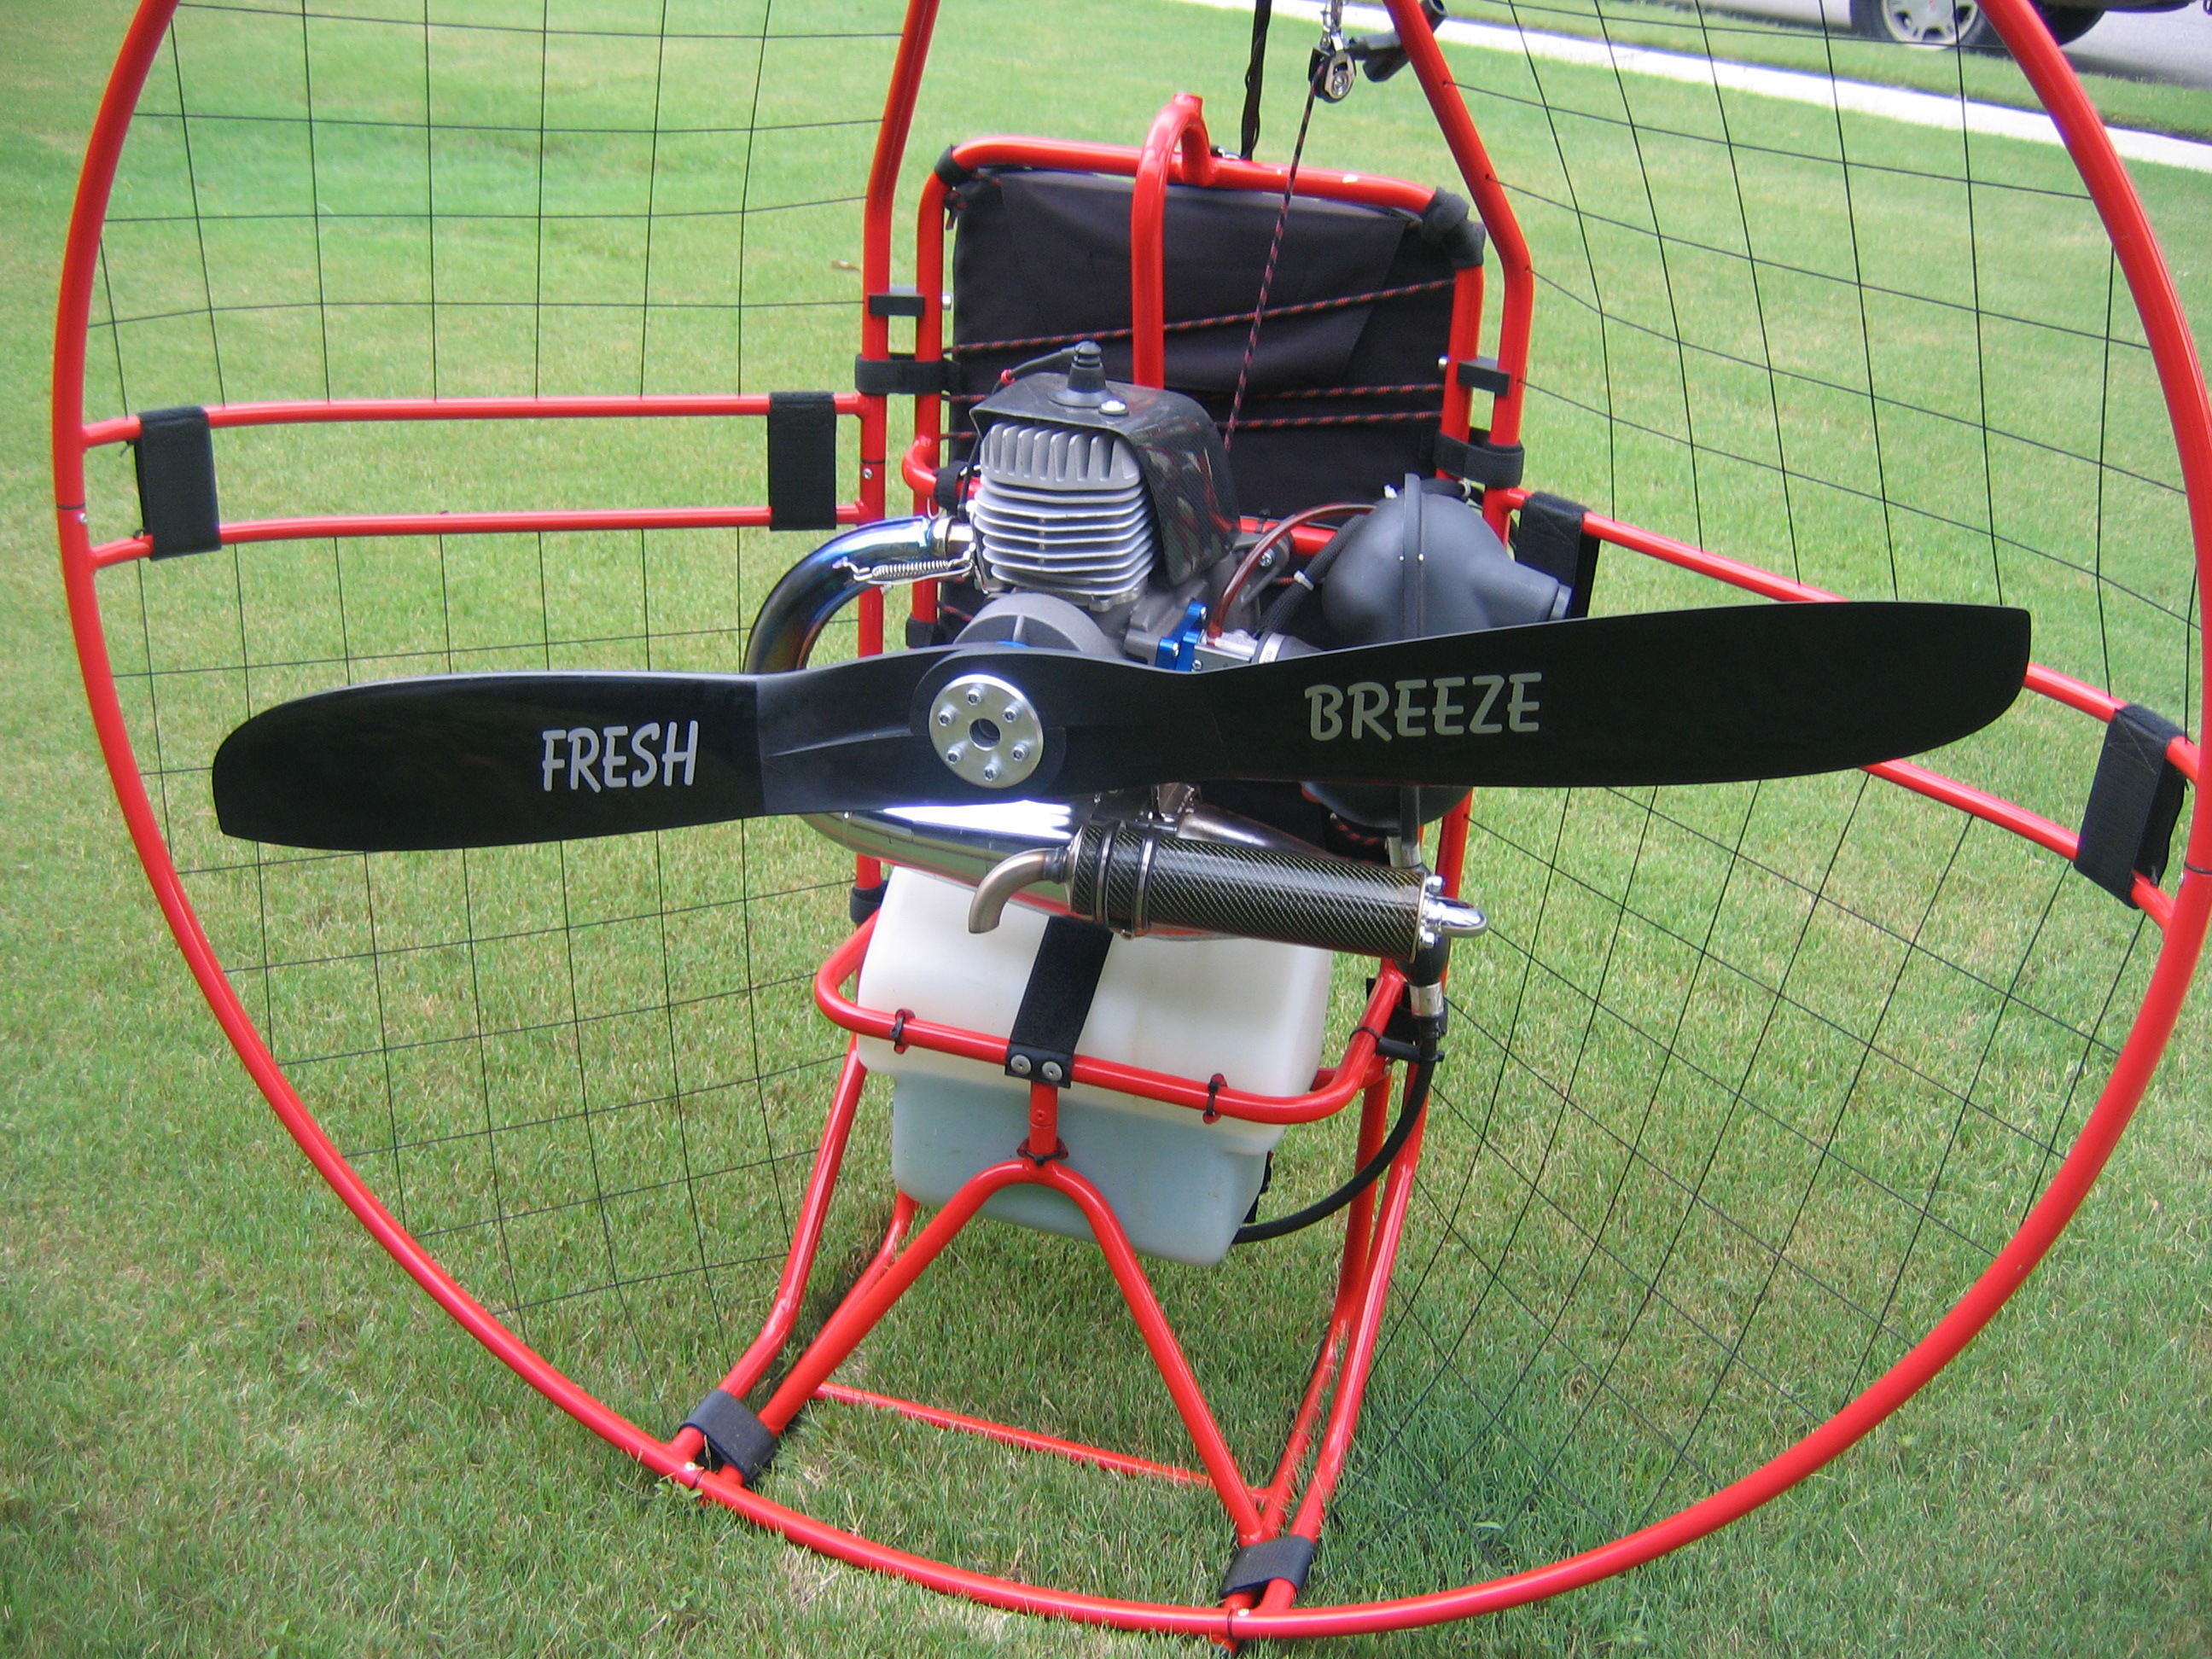 Rob's Paragliding Blog: New Snap 100 Prop